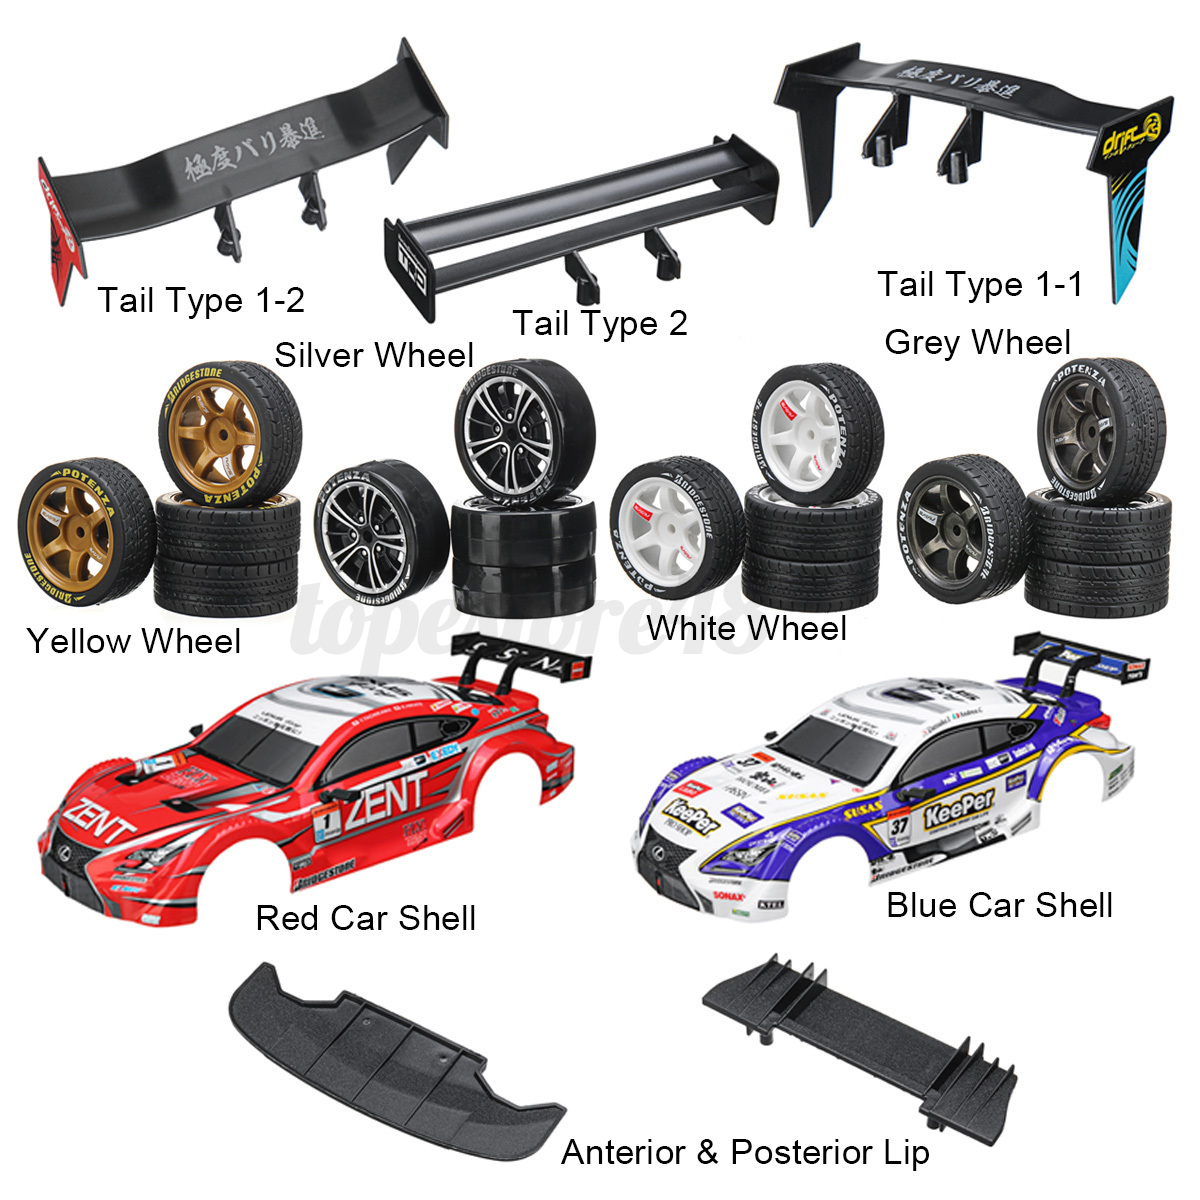 1-16-High-Speed-Upgrade-Replacement-Parts-For-2-4G-4WD-Drift-Stunt-Racing-RC-Car thumbnail 2